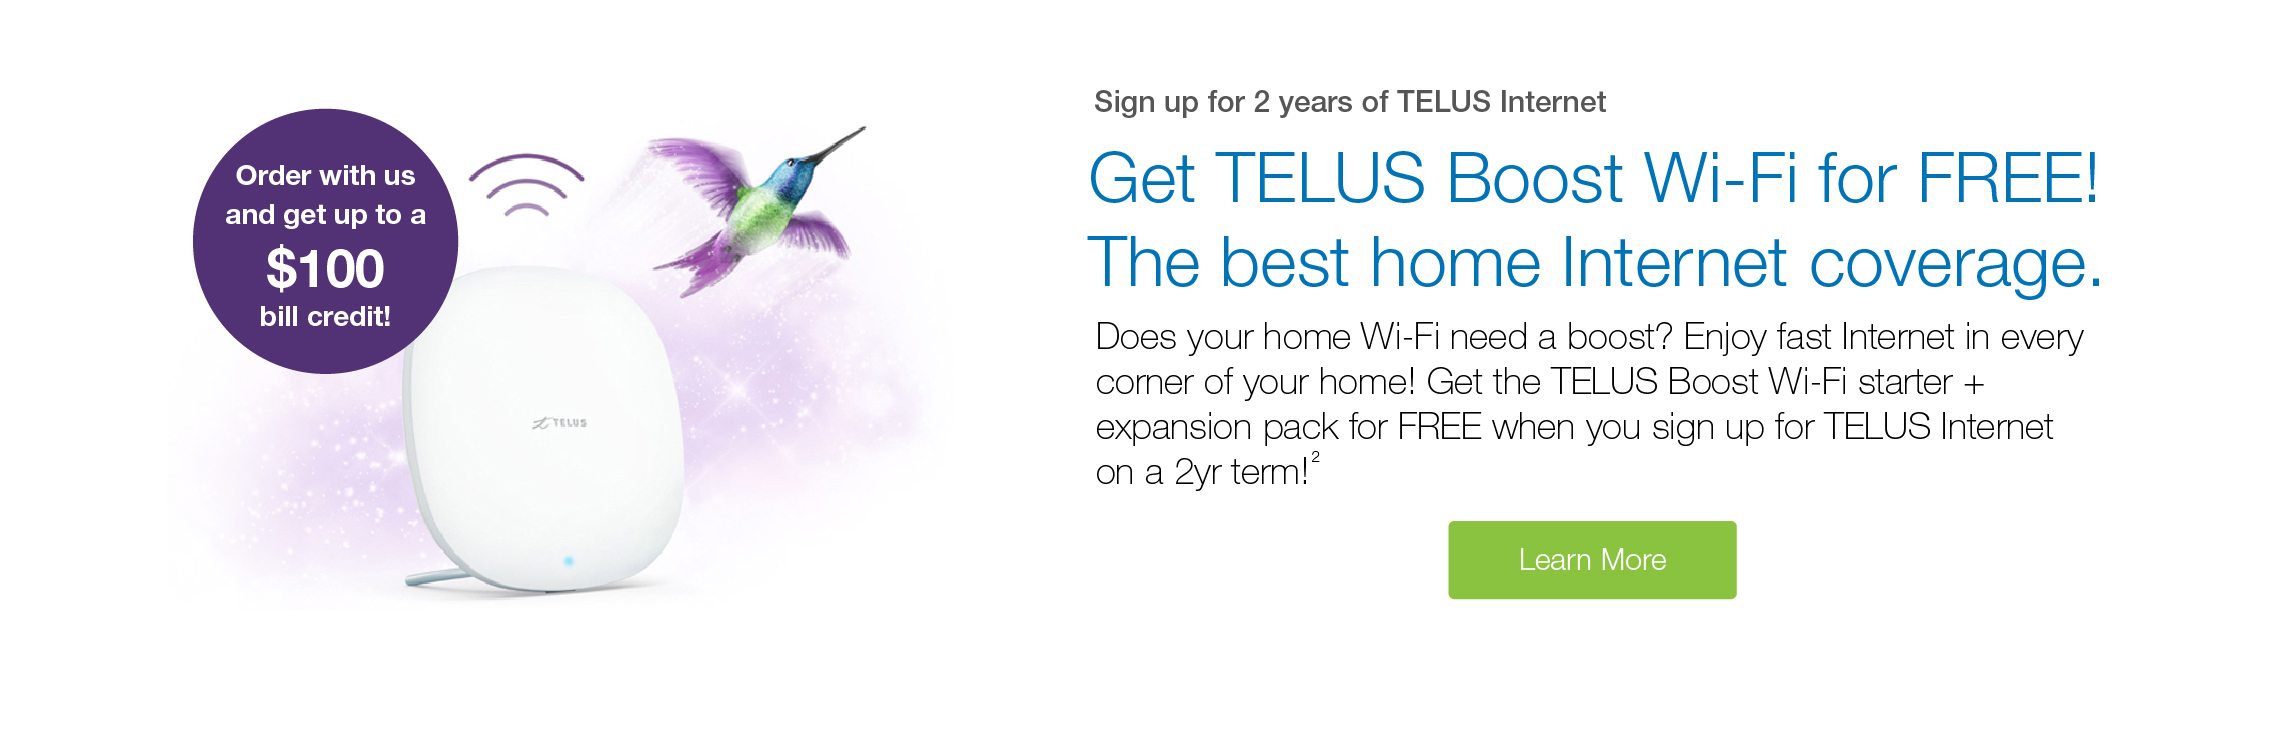 Sign Up for 2 Years of TELUS Internet and Get Free TELUS Boost Wi-Fi!